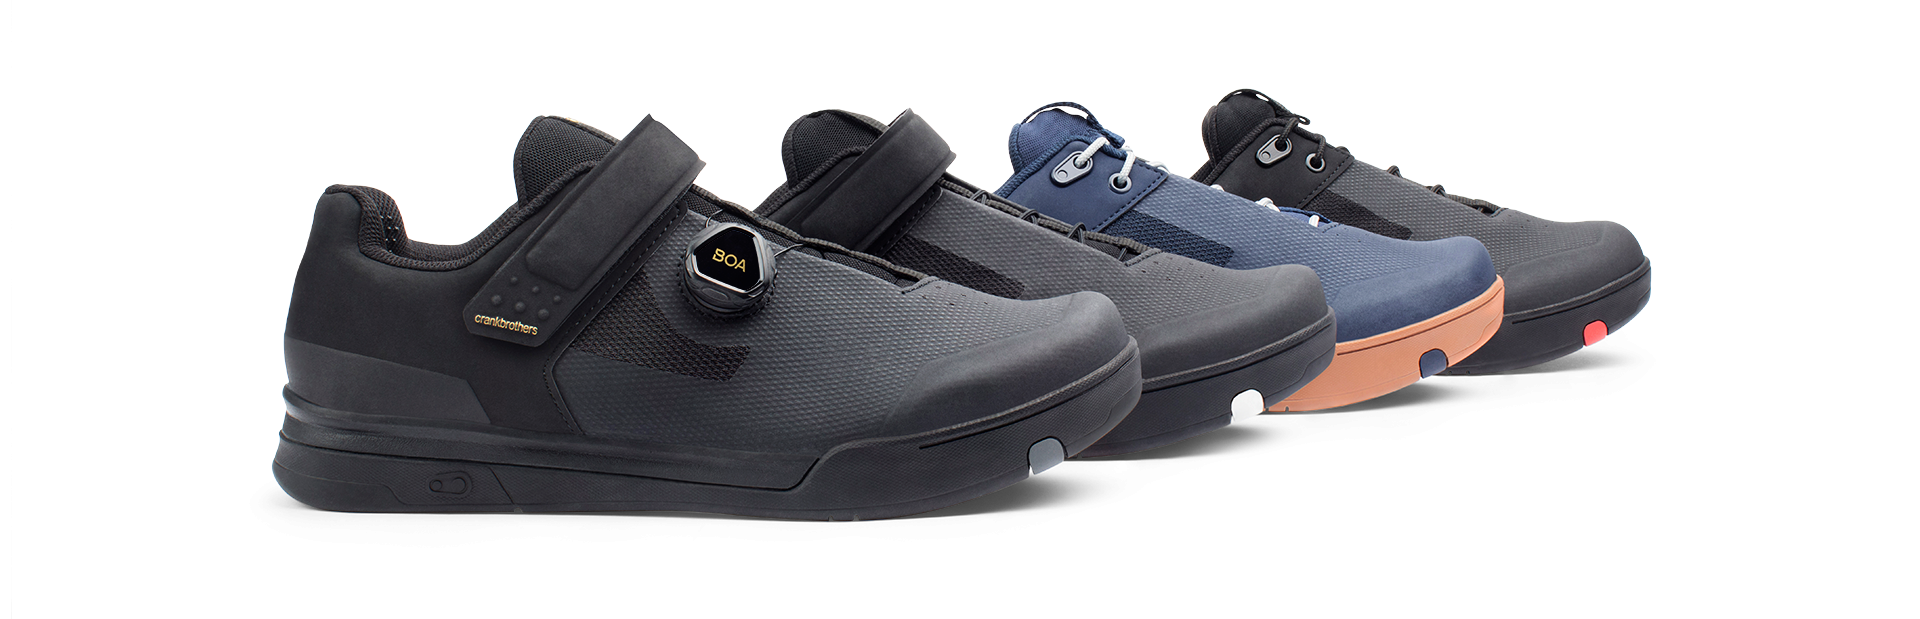 Crankbrothers Mallet Schuhe